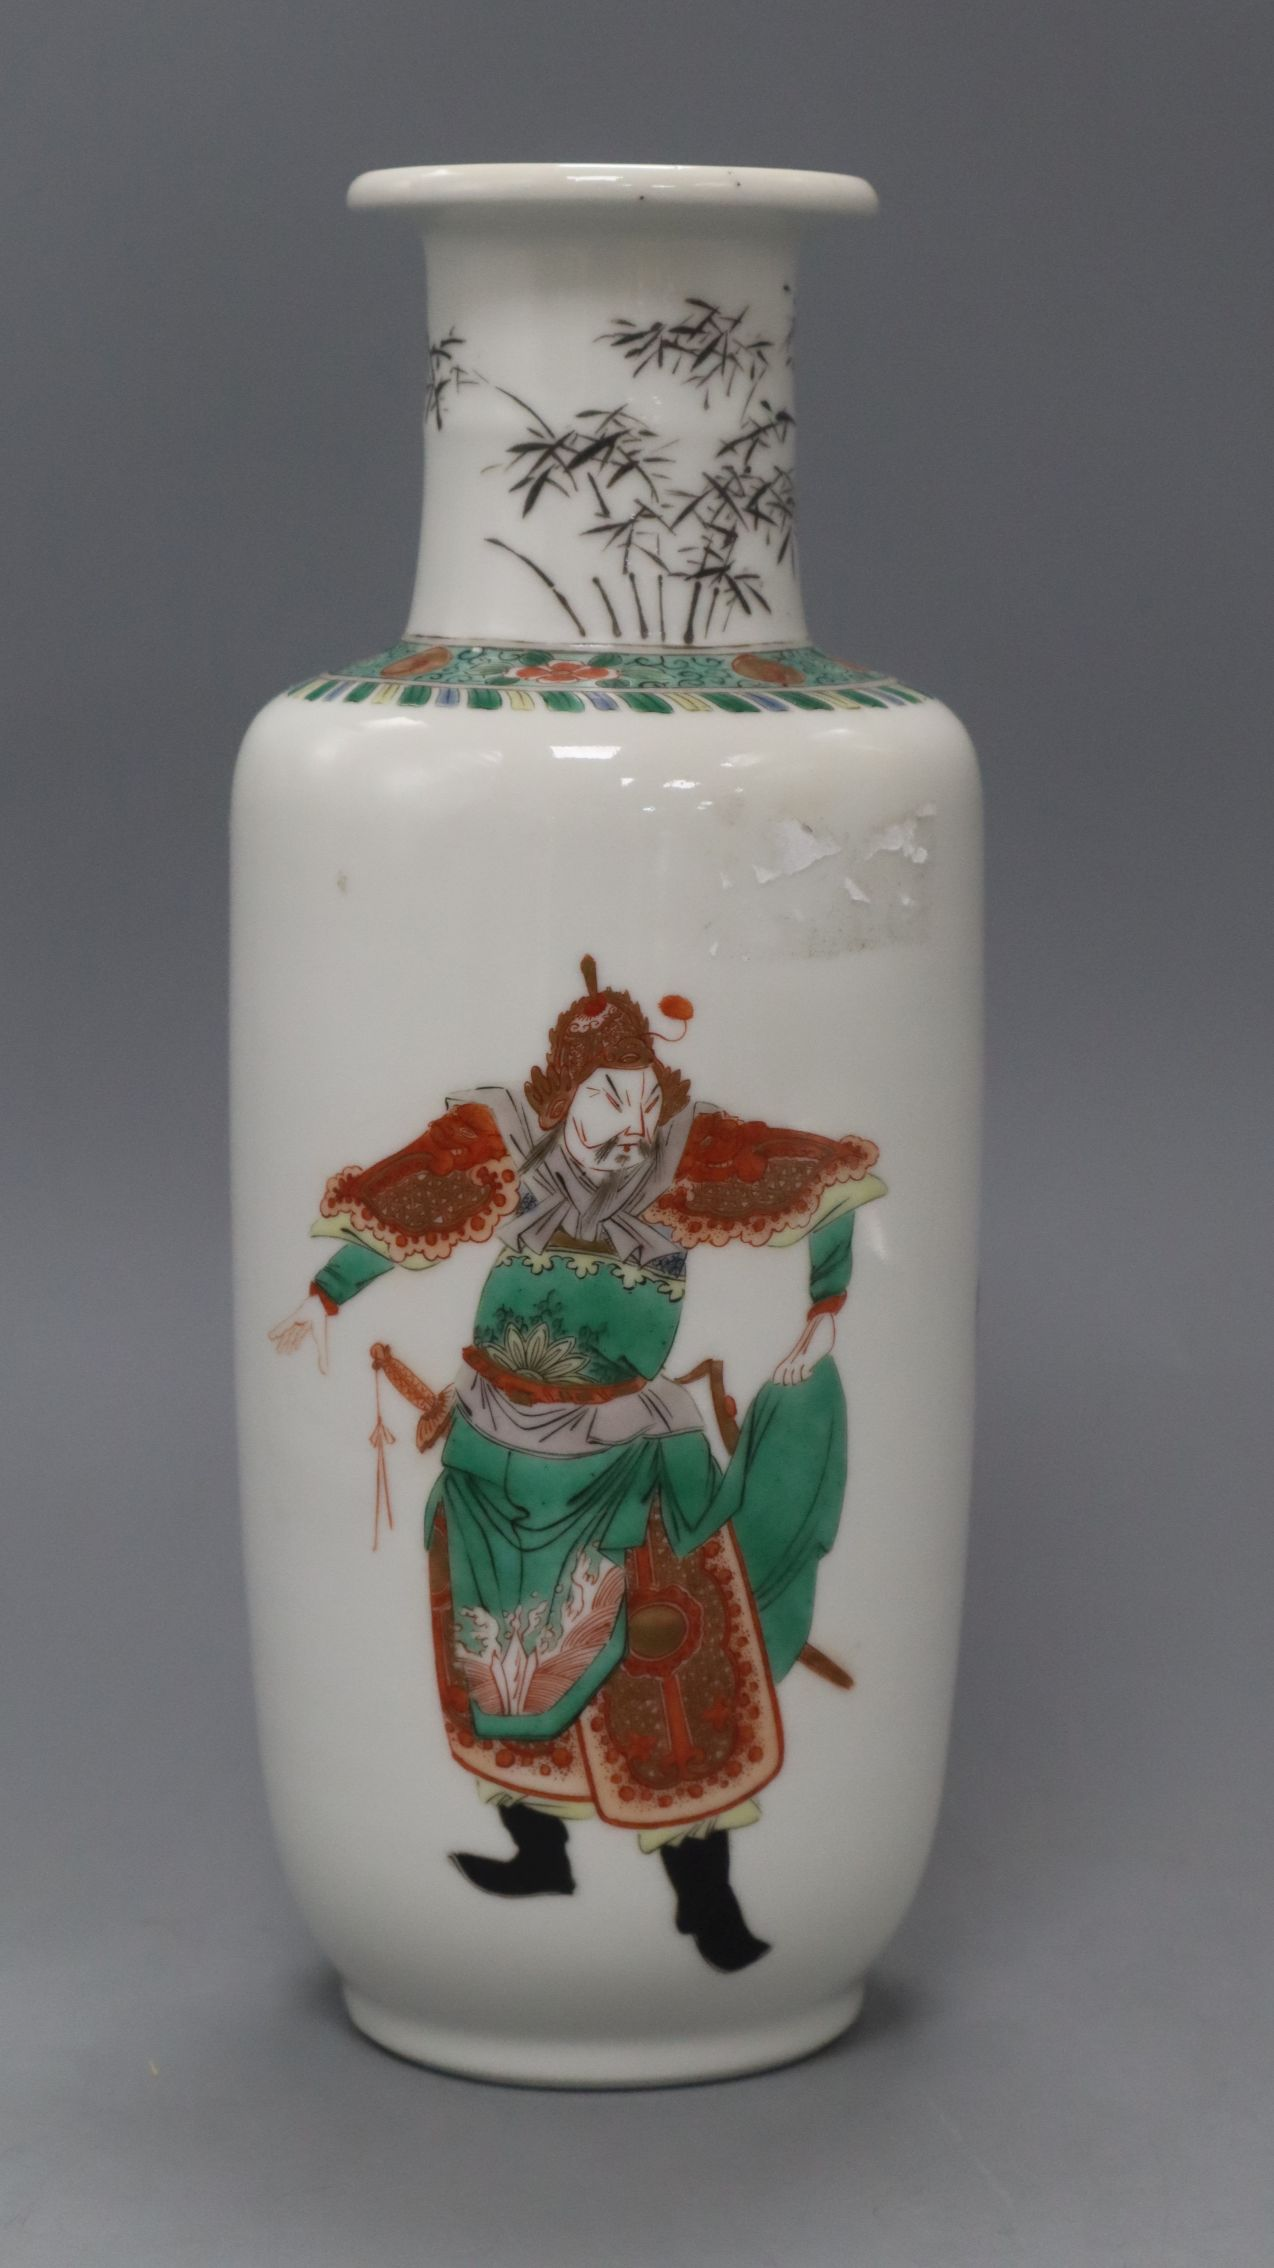 Lot 7 - A Chinese famille verte Rouleau vase, Qing dynasty height 26cm